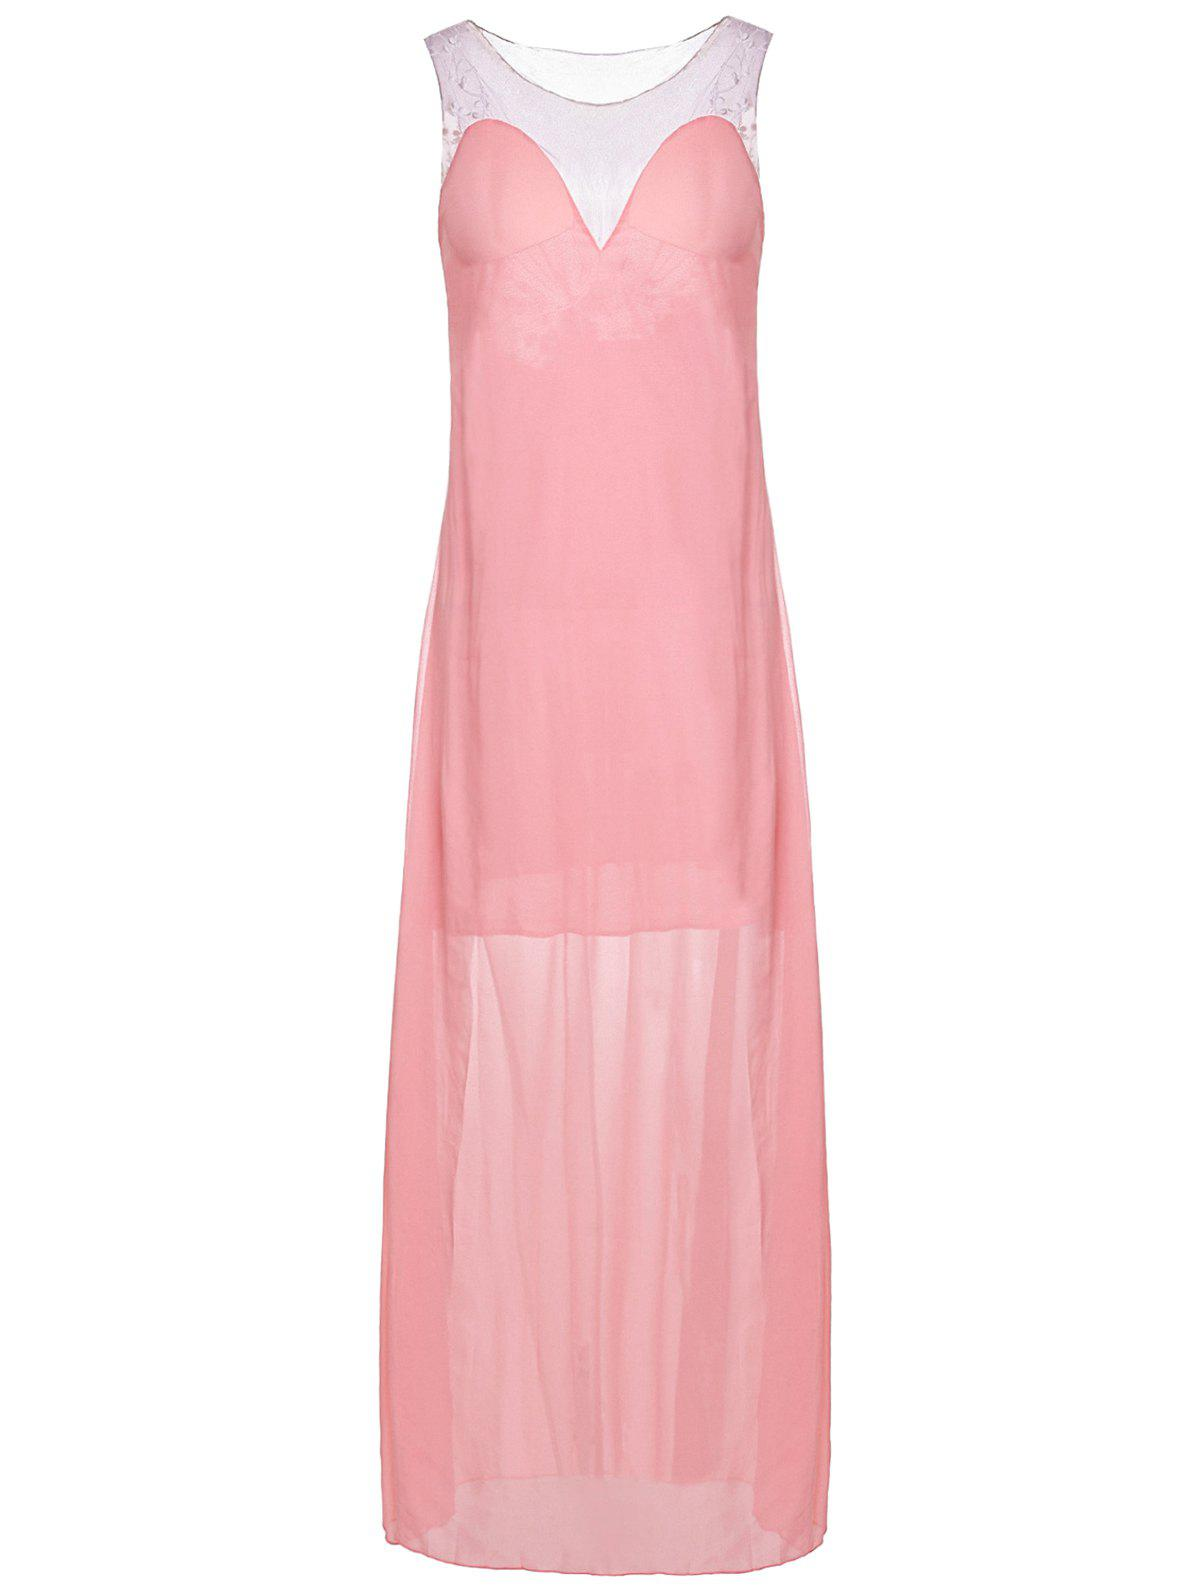 Sexy Plunging Neck Sleeveless Backless Spliced Womens DressWomen<br><br><br>Size: S<br>Color: PINK